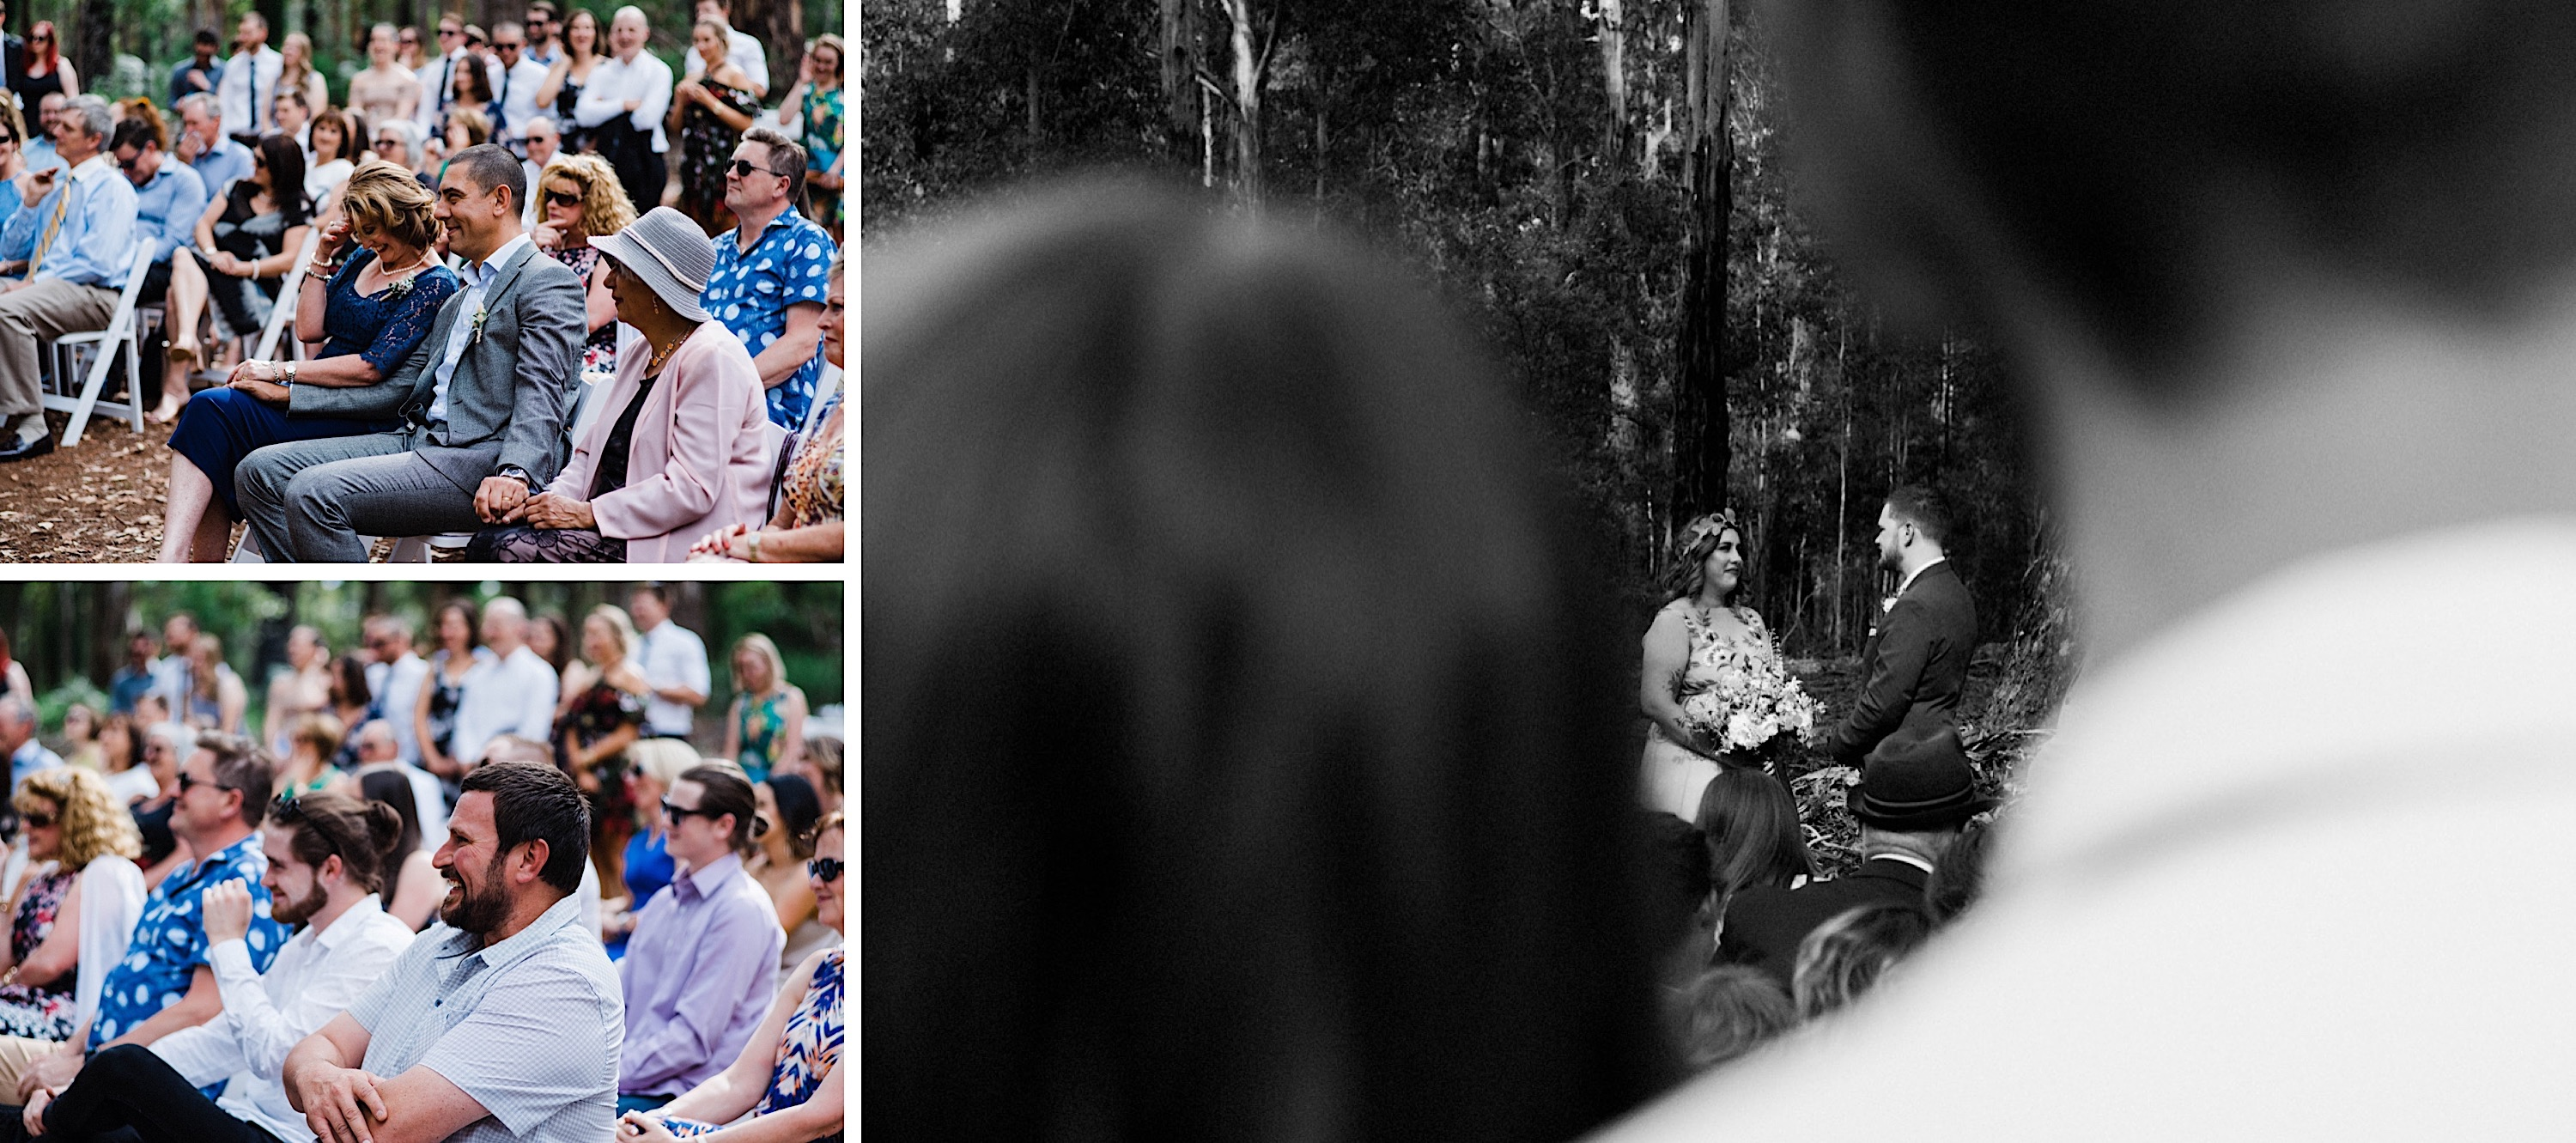 Candid wedding photography of guests at a country wedding ceremony in Western Australia.